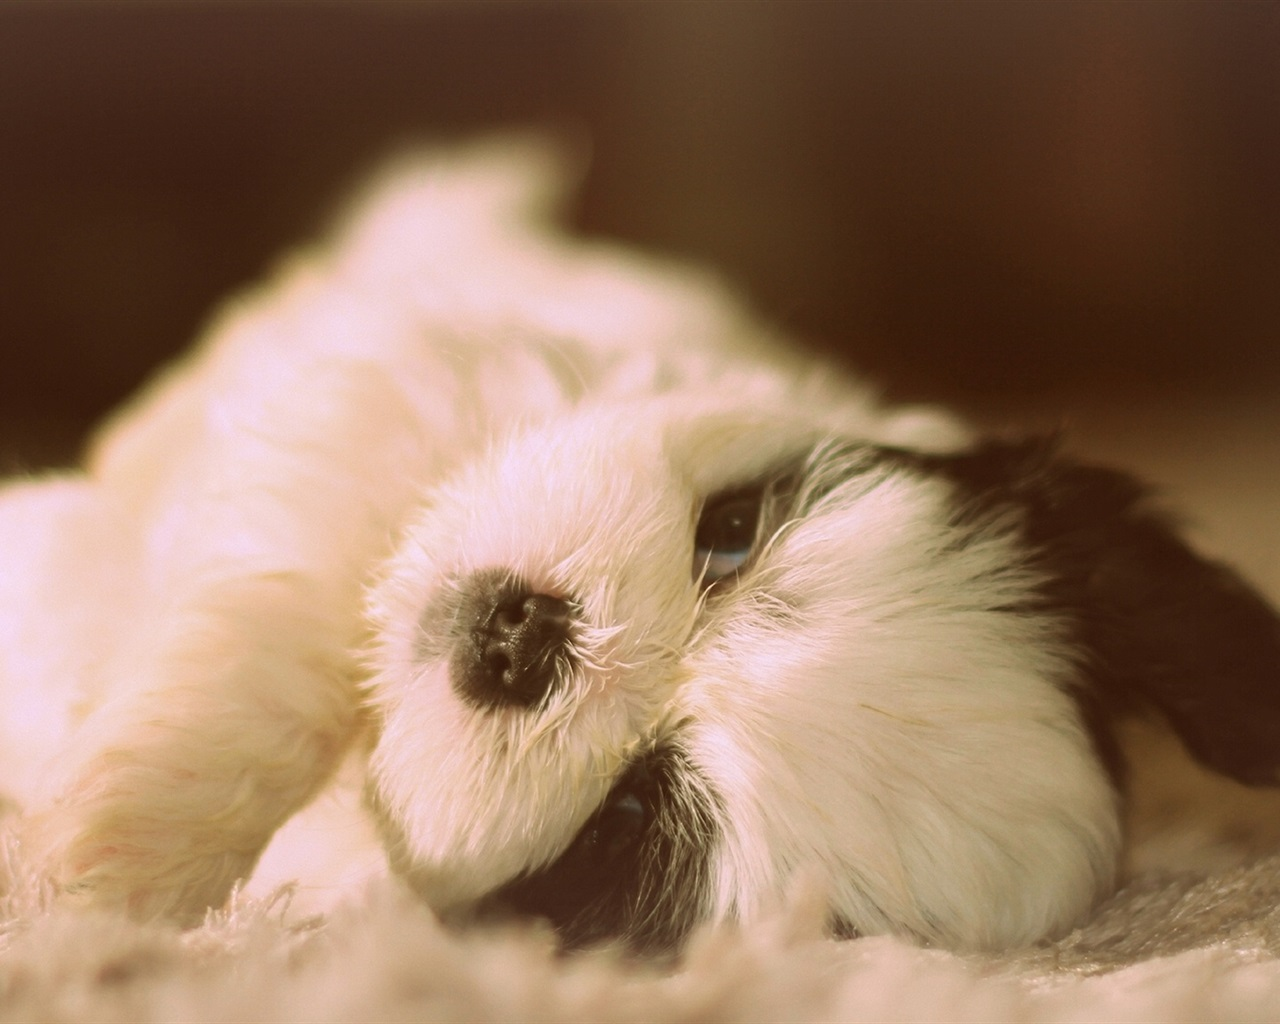 Download Wallpaper 1280x1024 Cute Shih Tzu, dog lying HD ...